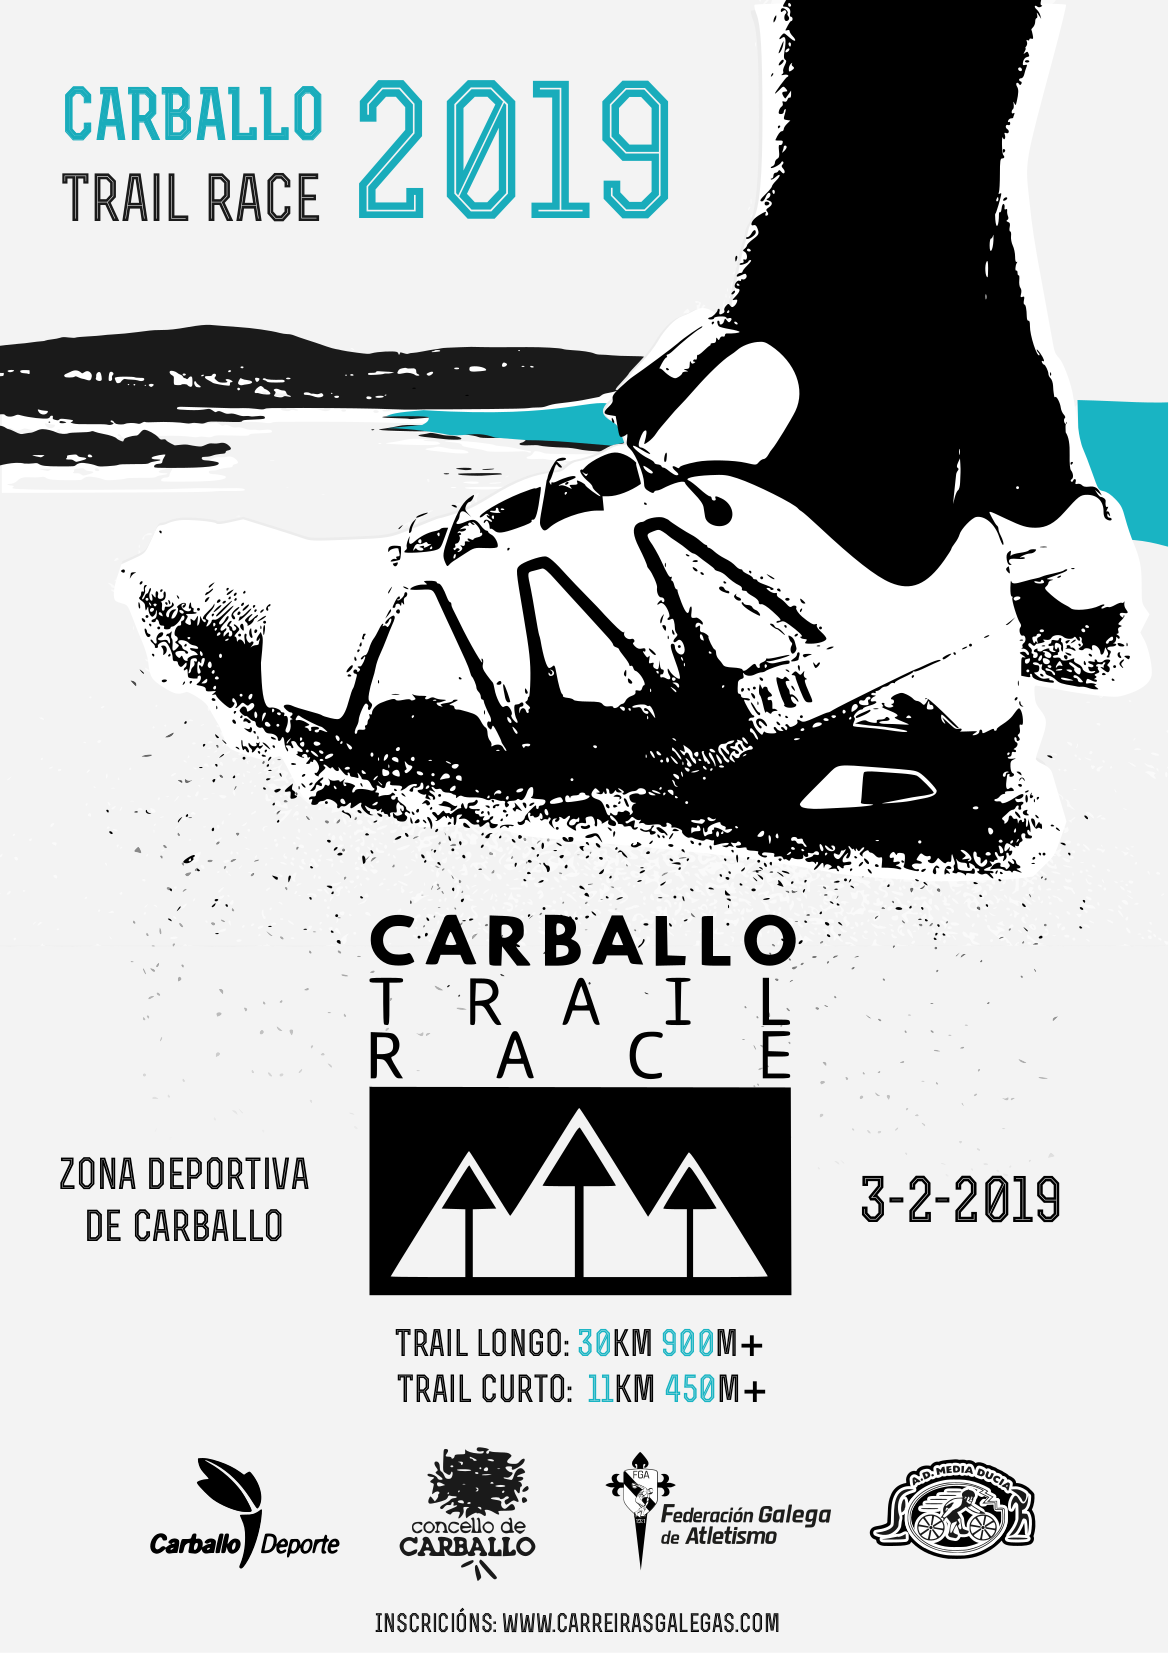 Carballo Trail Race 2019